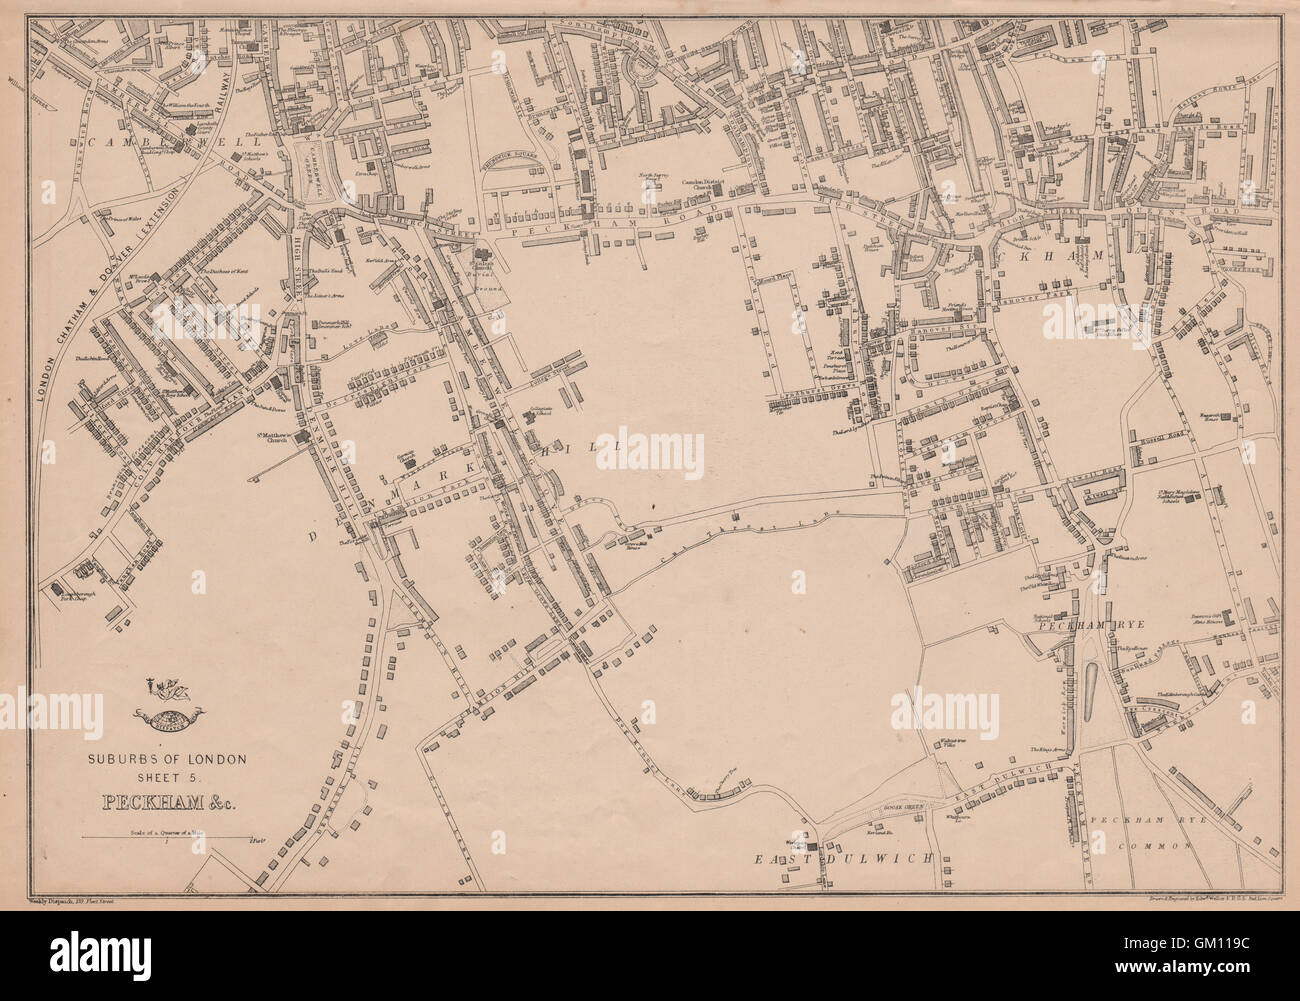 south london peckhamrye east dulwich camberwell denmark hill weller 1863 map